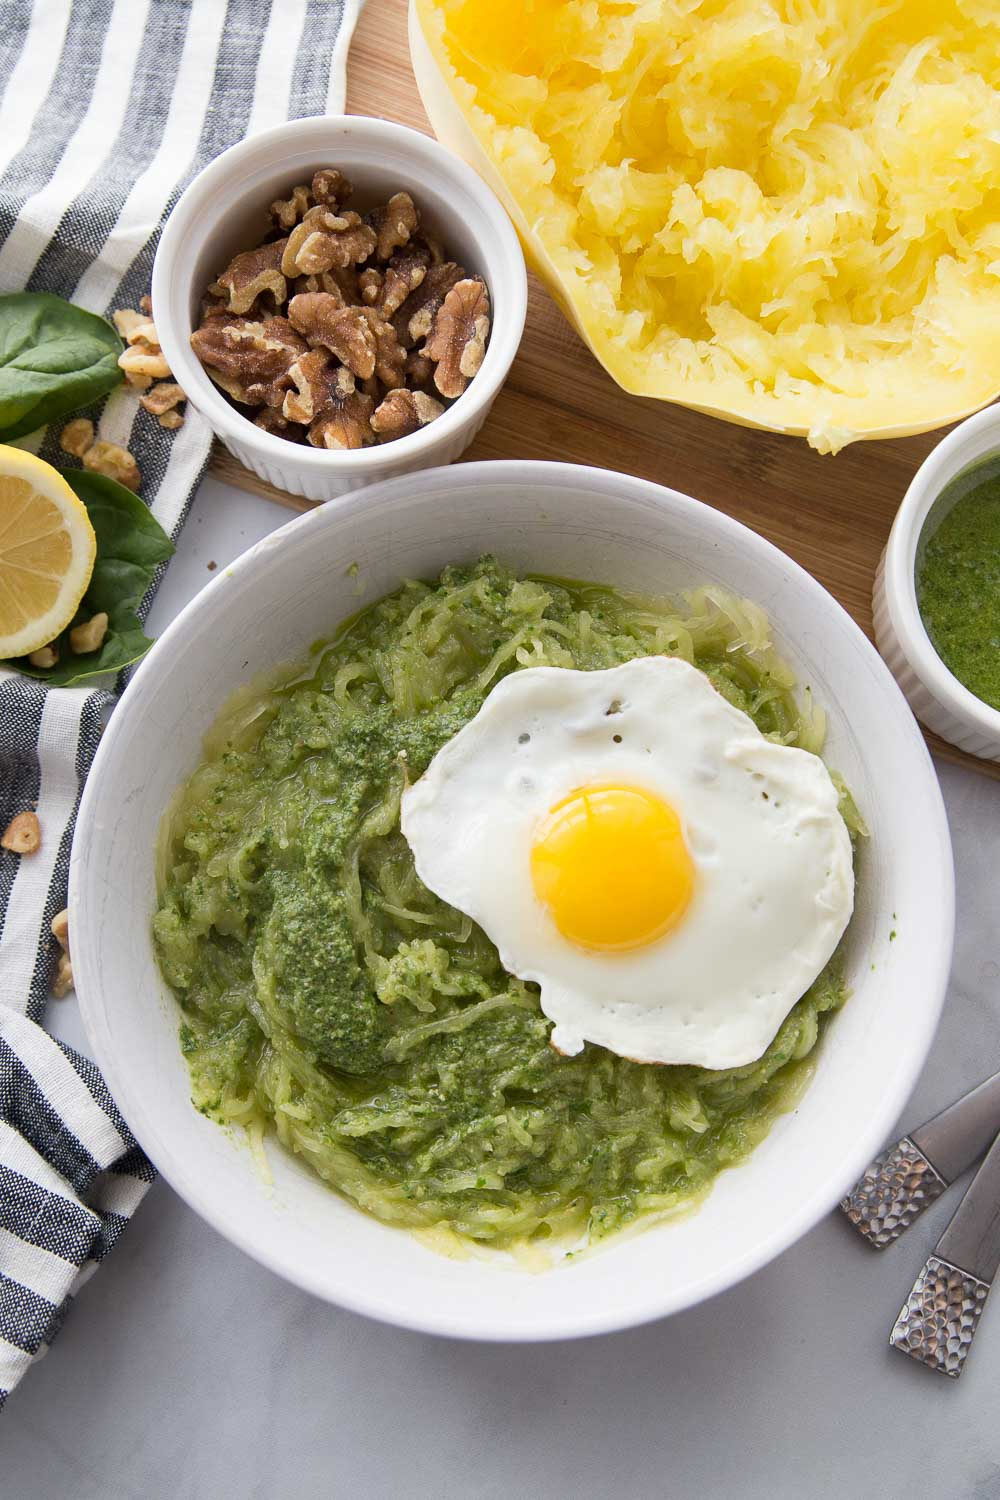 A white bowl of spaghetti squash with pesto and a fried egg